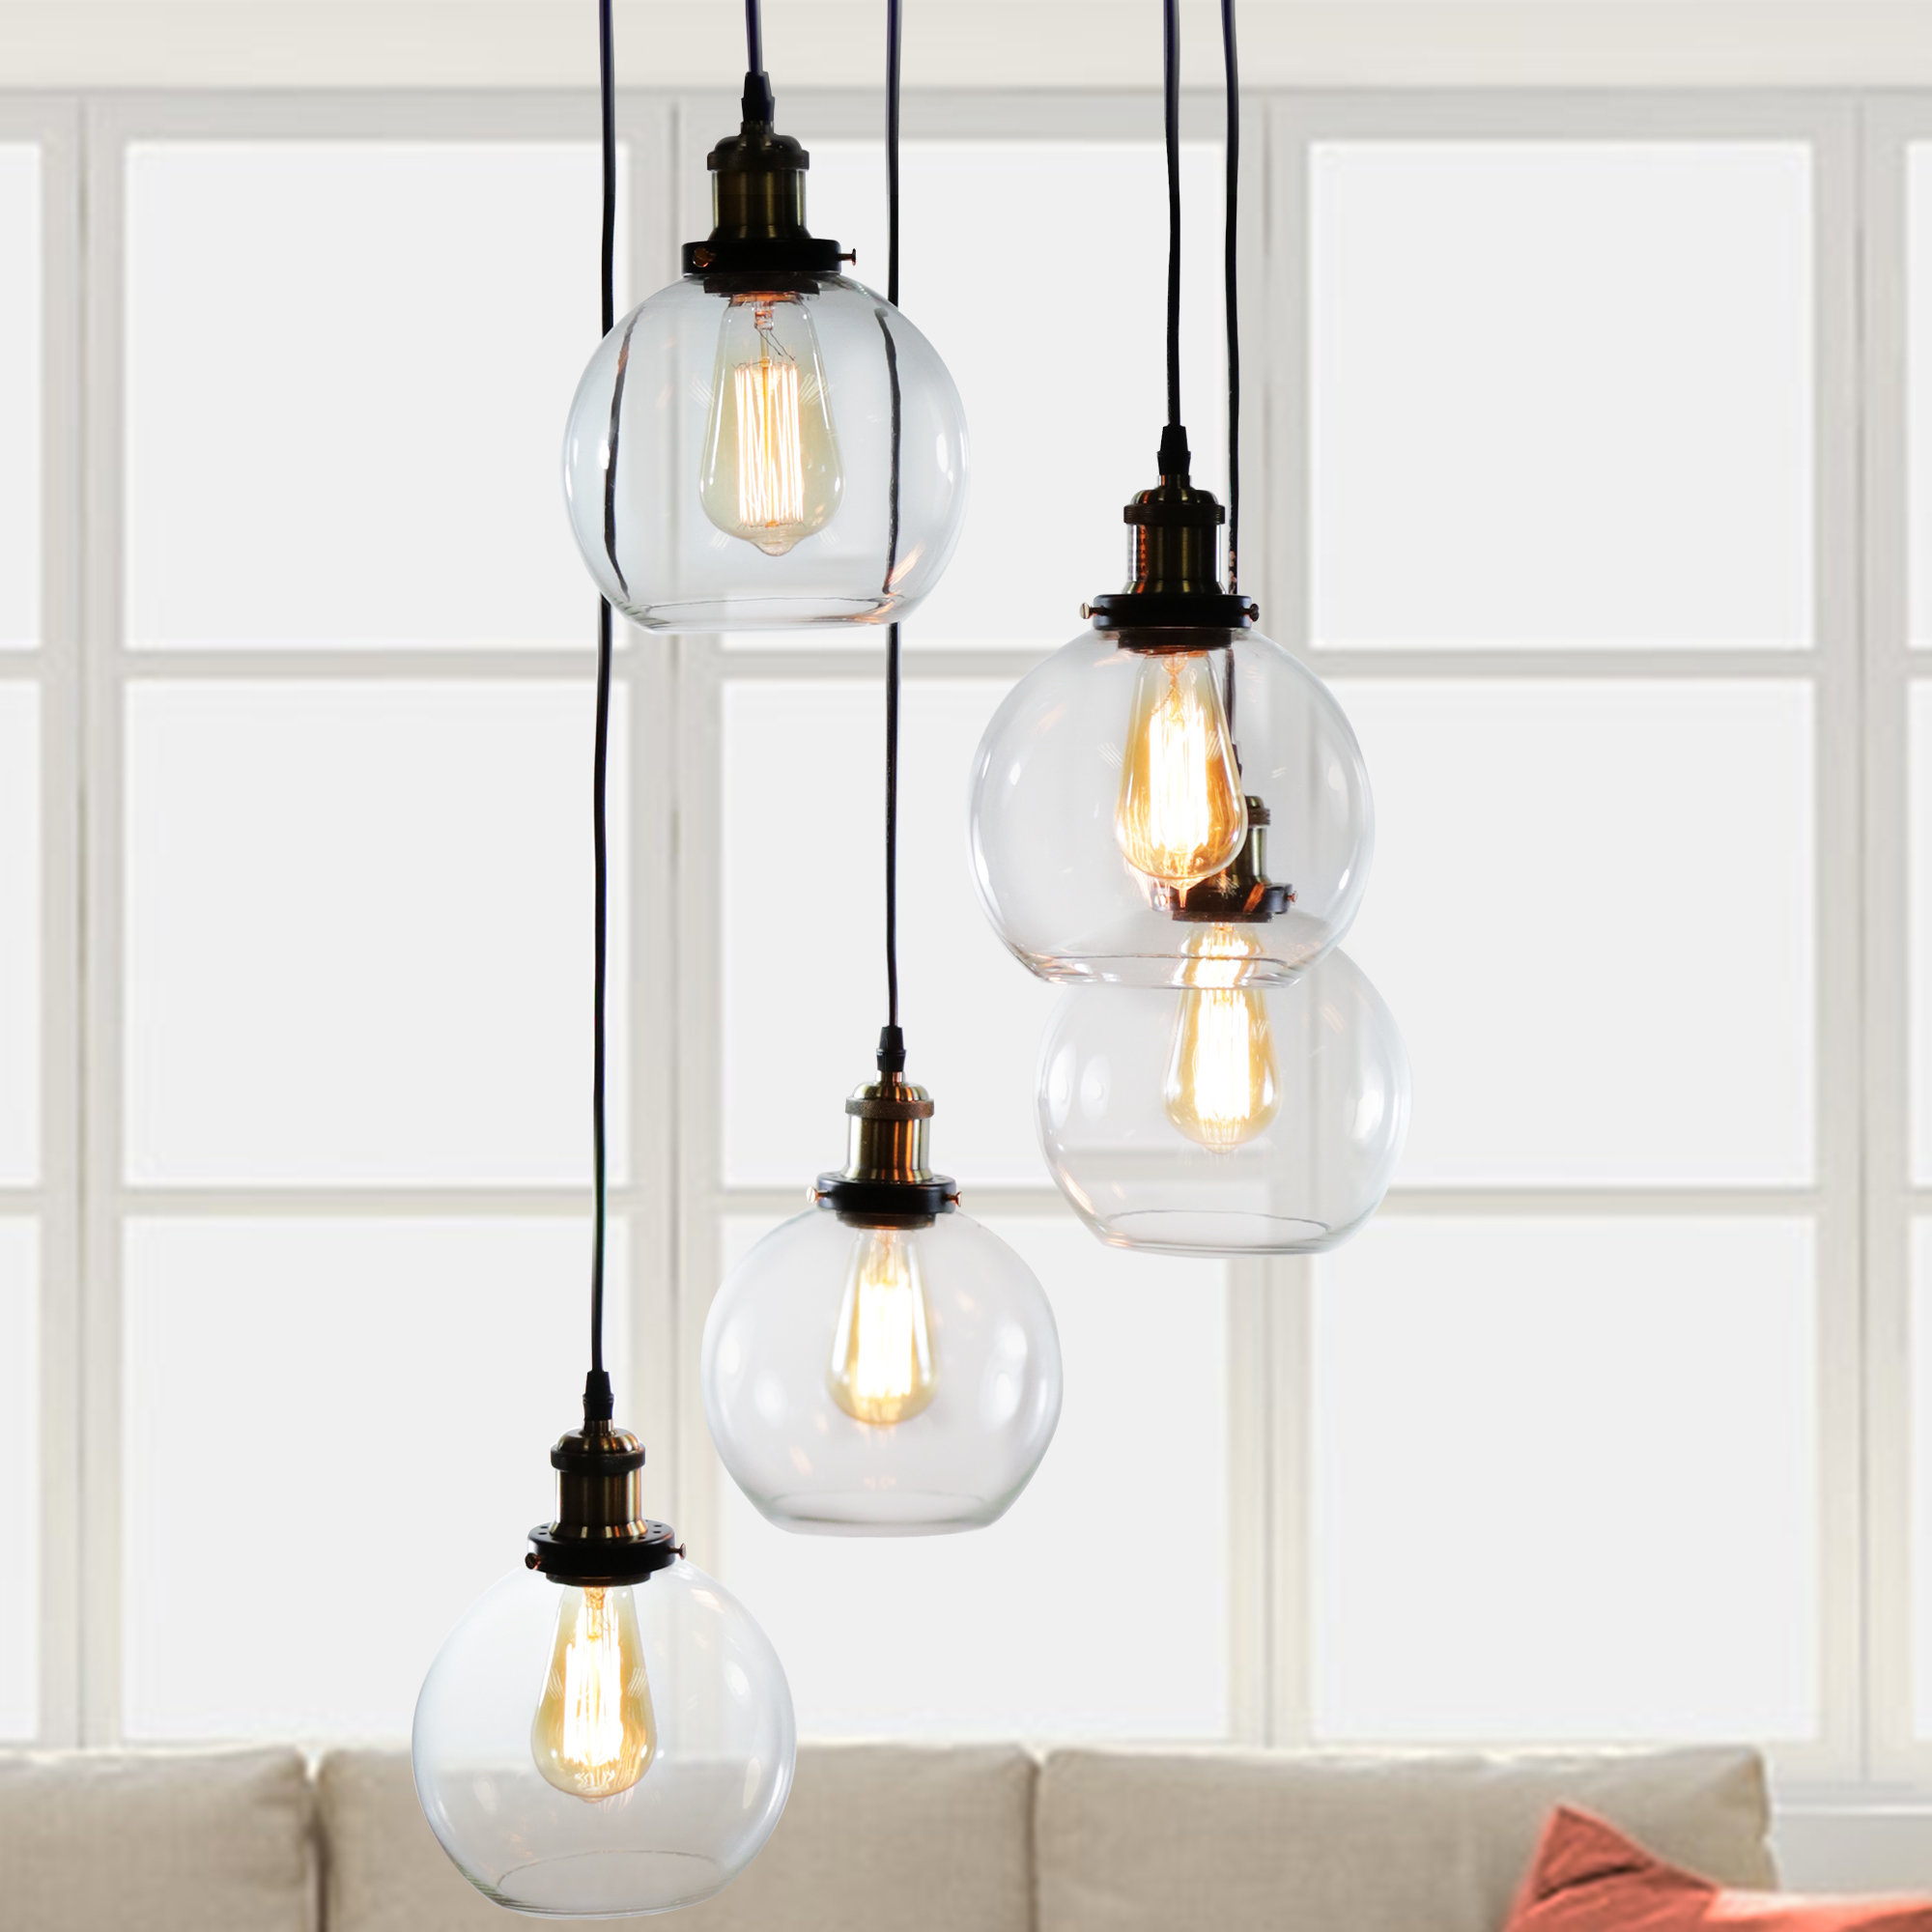 Gracie Oaks Buragate 5 Light Cluster Pendant With Latest Pruett Cognac Glass 8 Light Cluster Pendants (View 6 of 20)